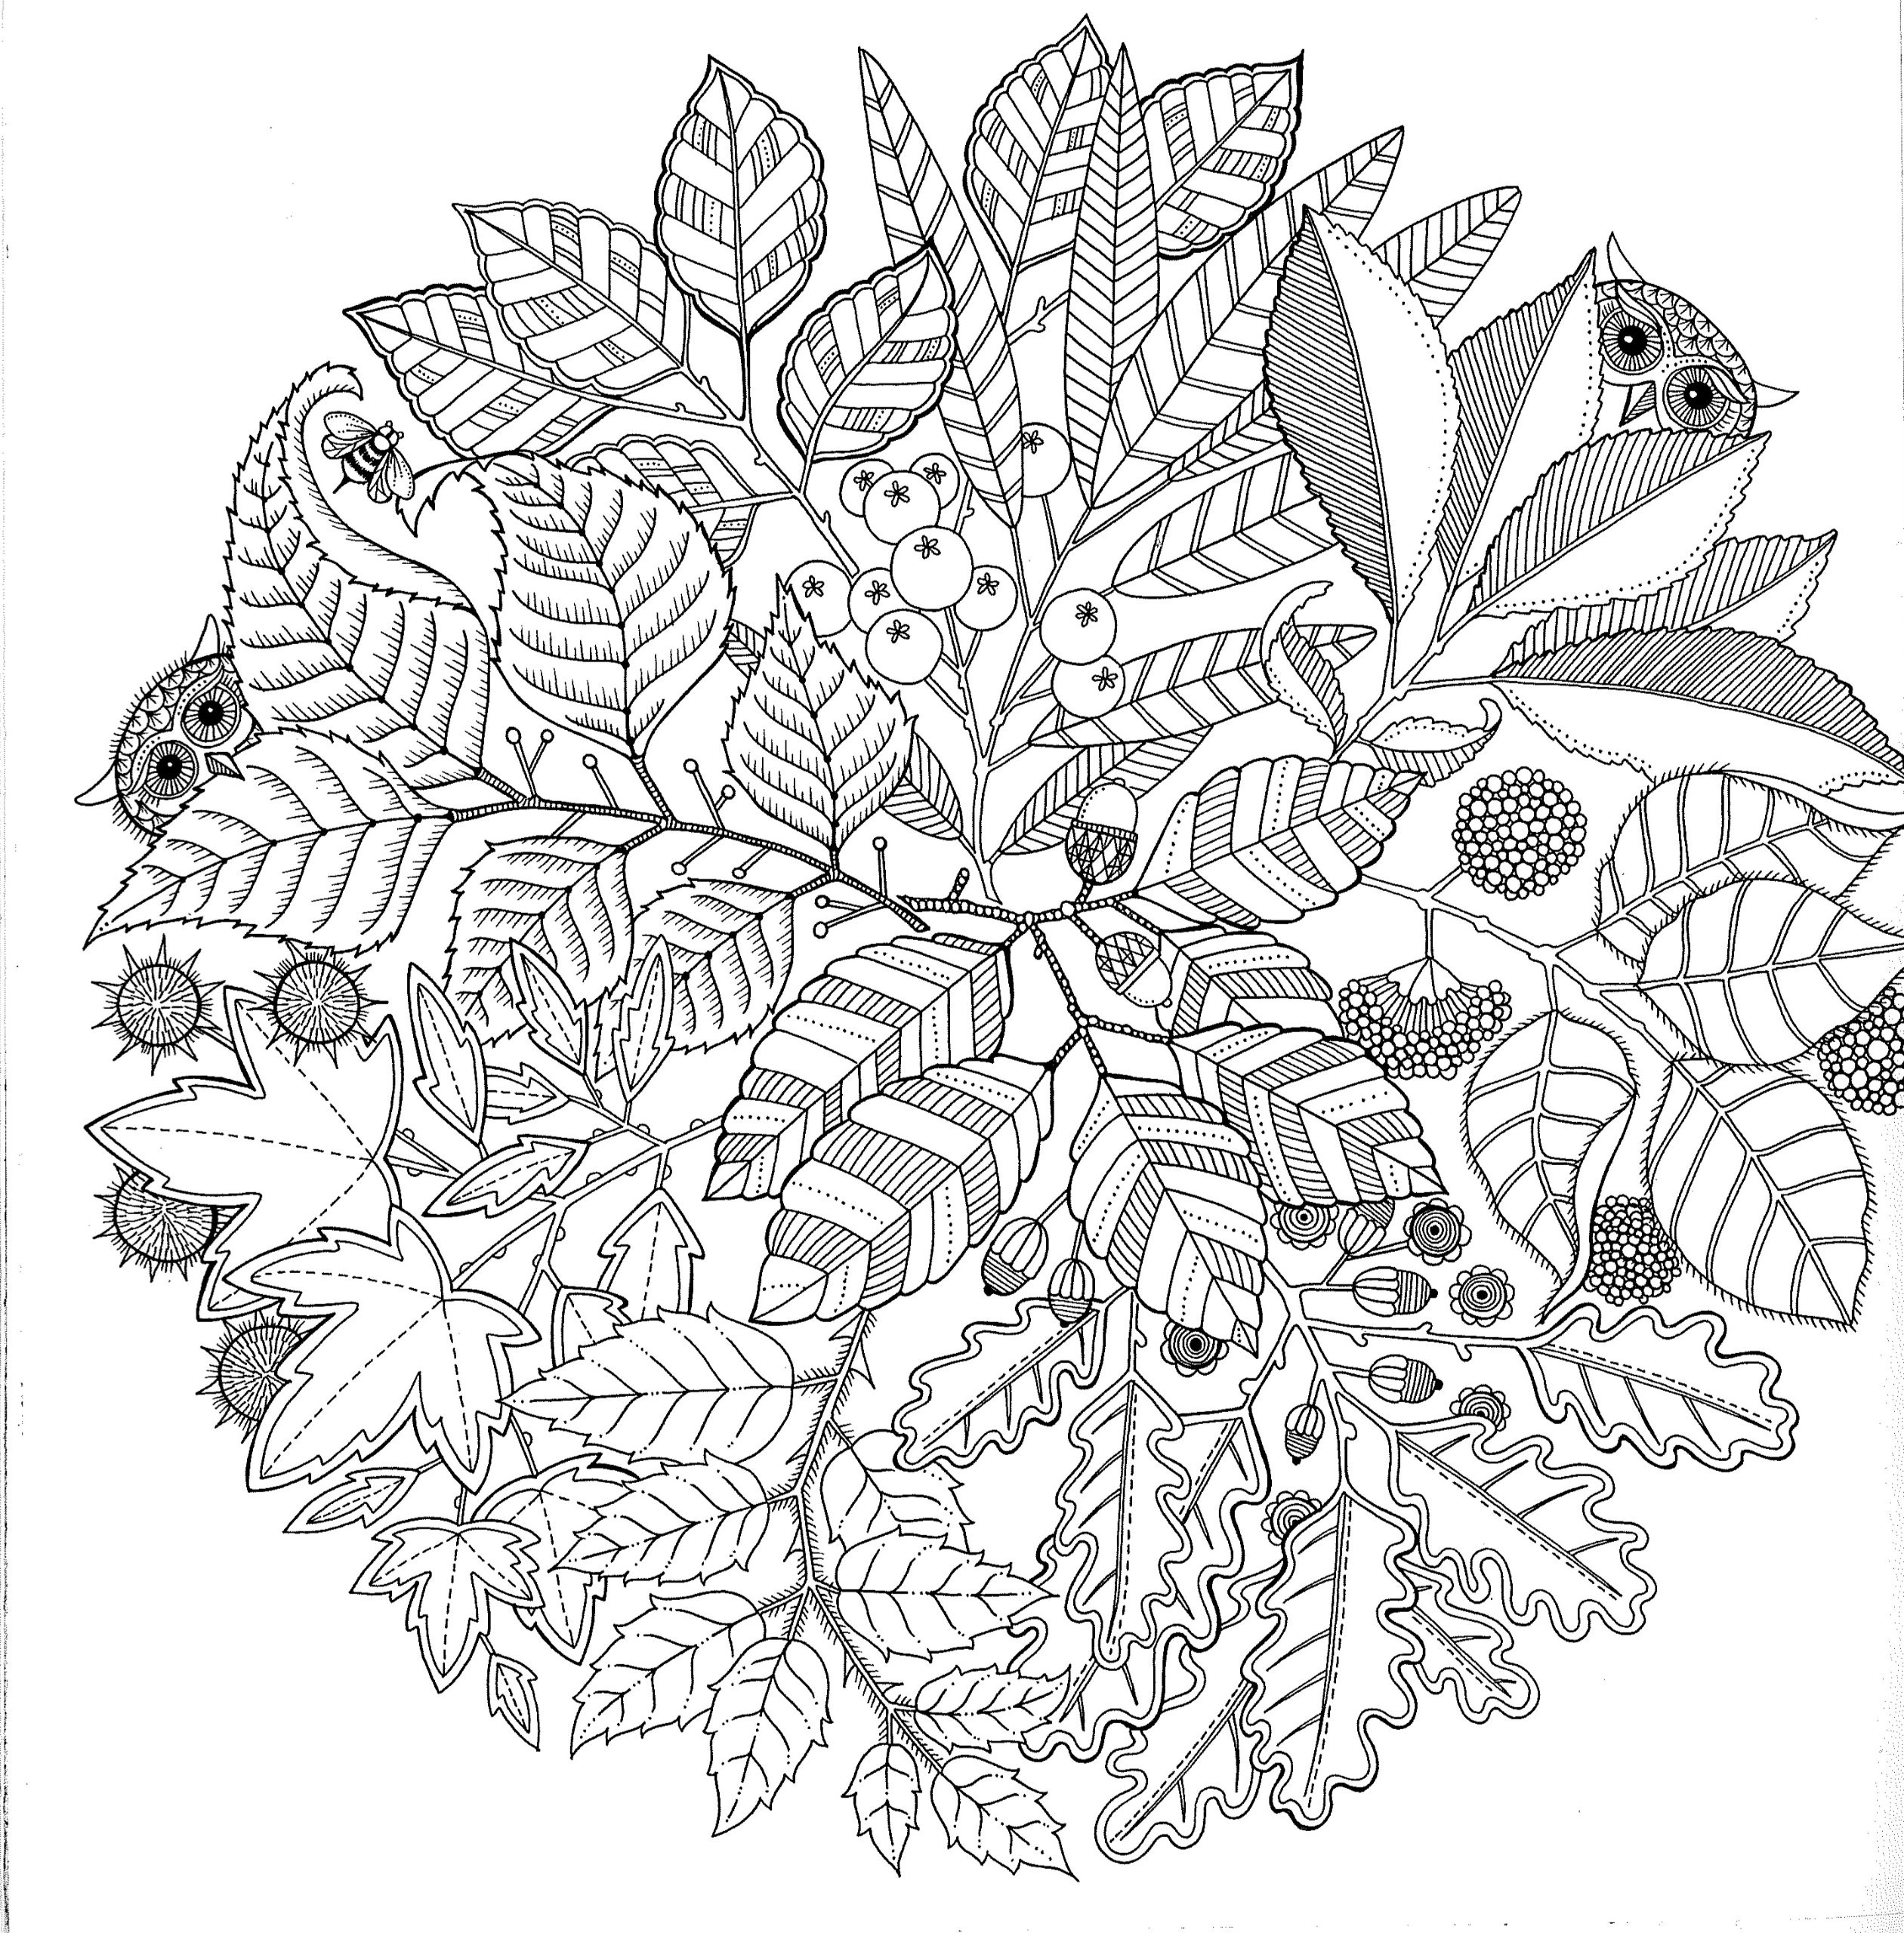 Best ideas about Adult Coloring Books Printable . Save or Pin Free Printable Abstract Coloring Pages for Adults Now.